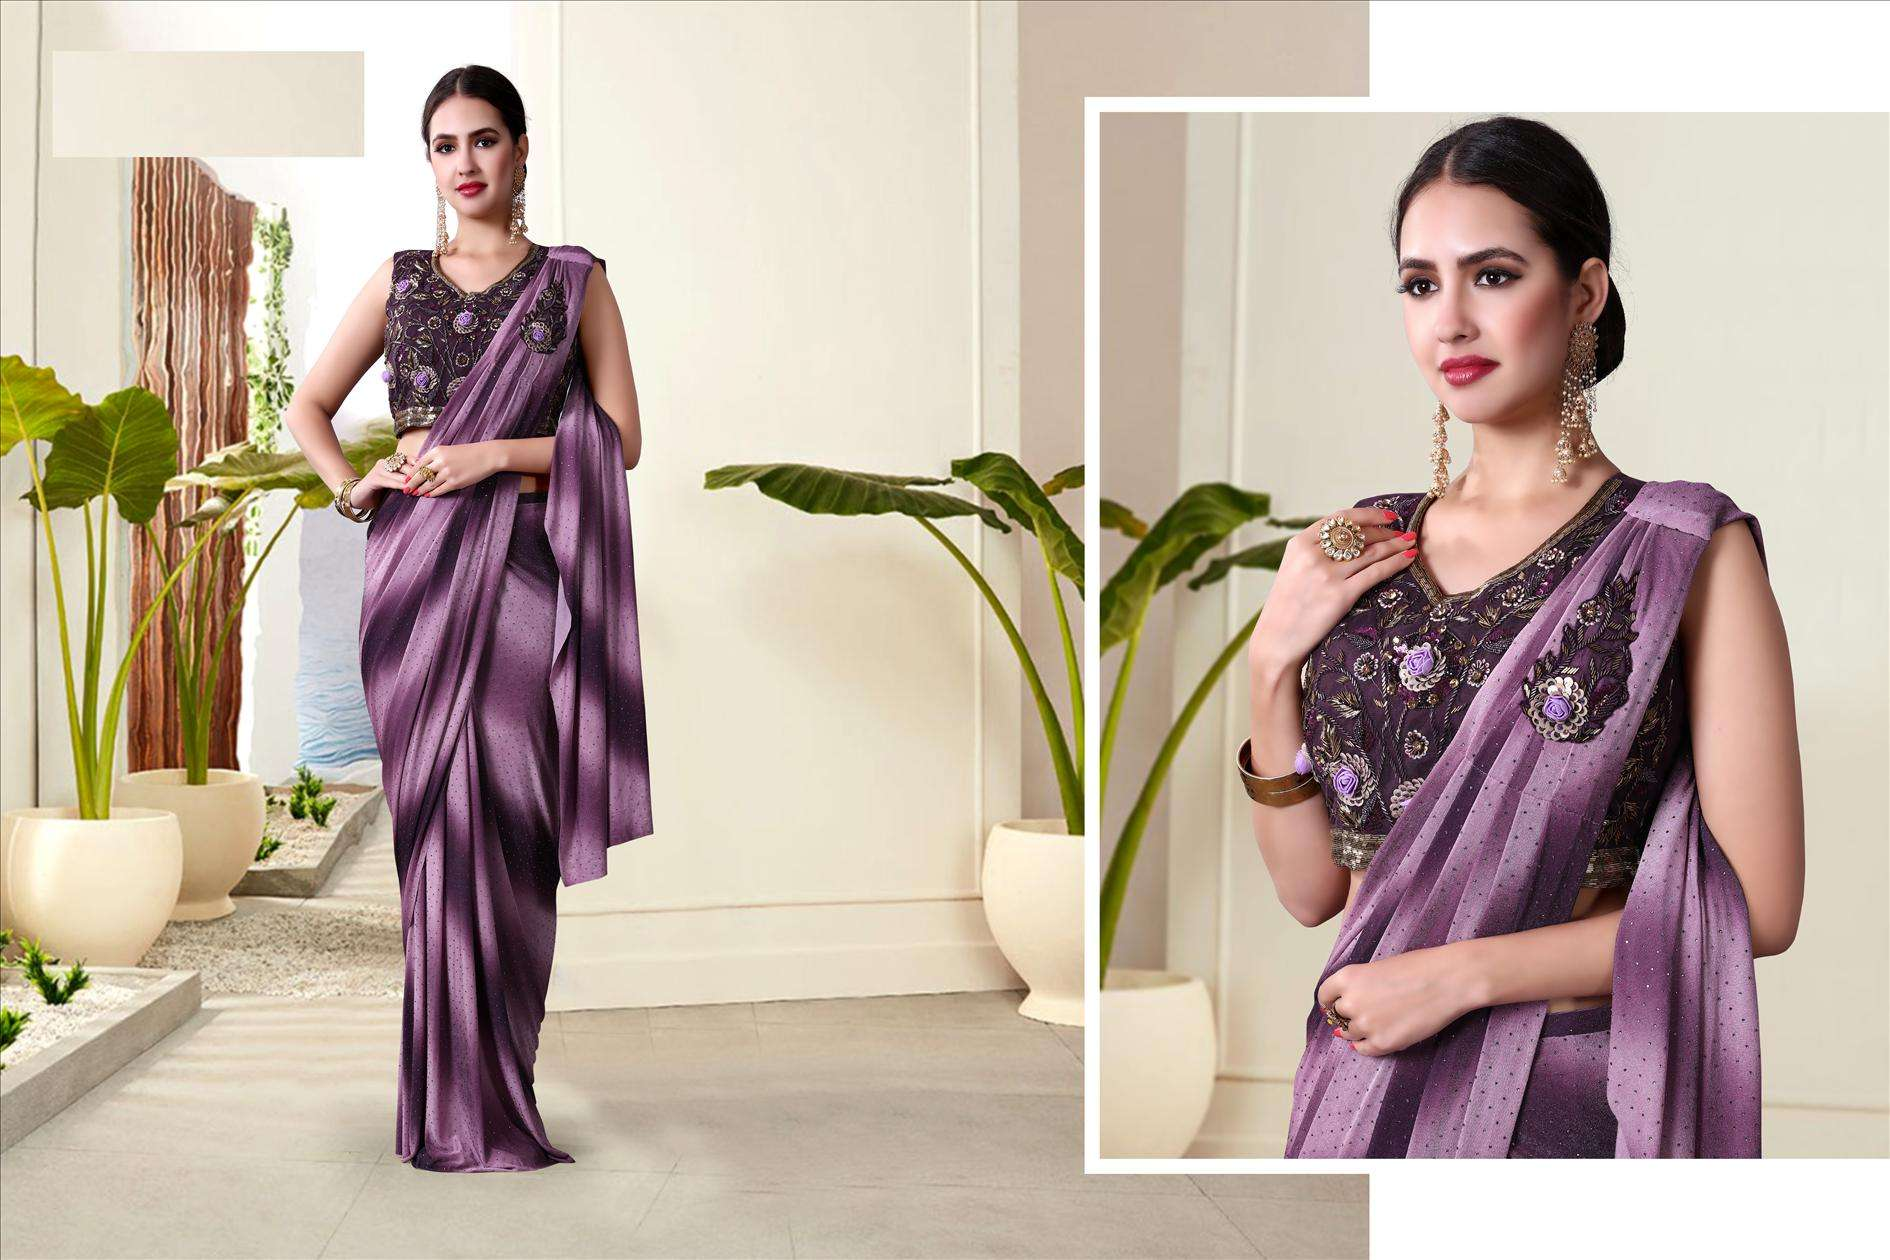 Purpal Black Fancy Lycra with Handwork Saree For Evening 60236